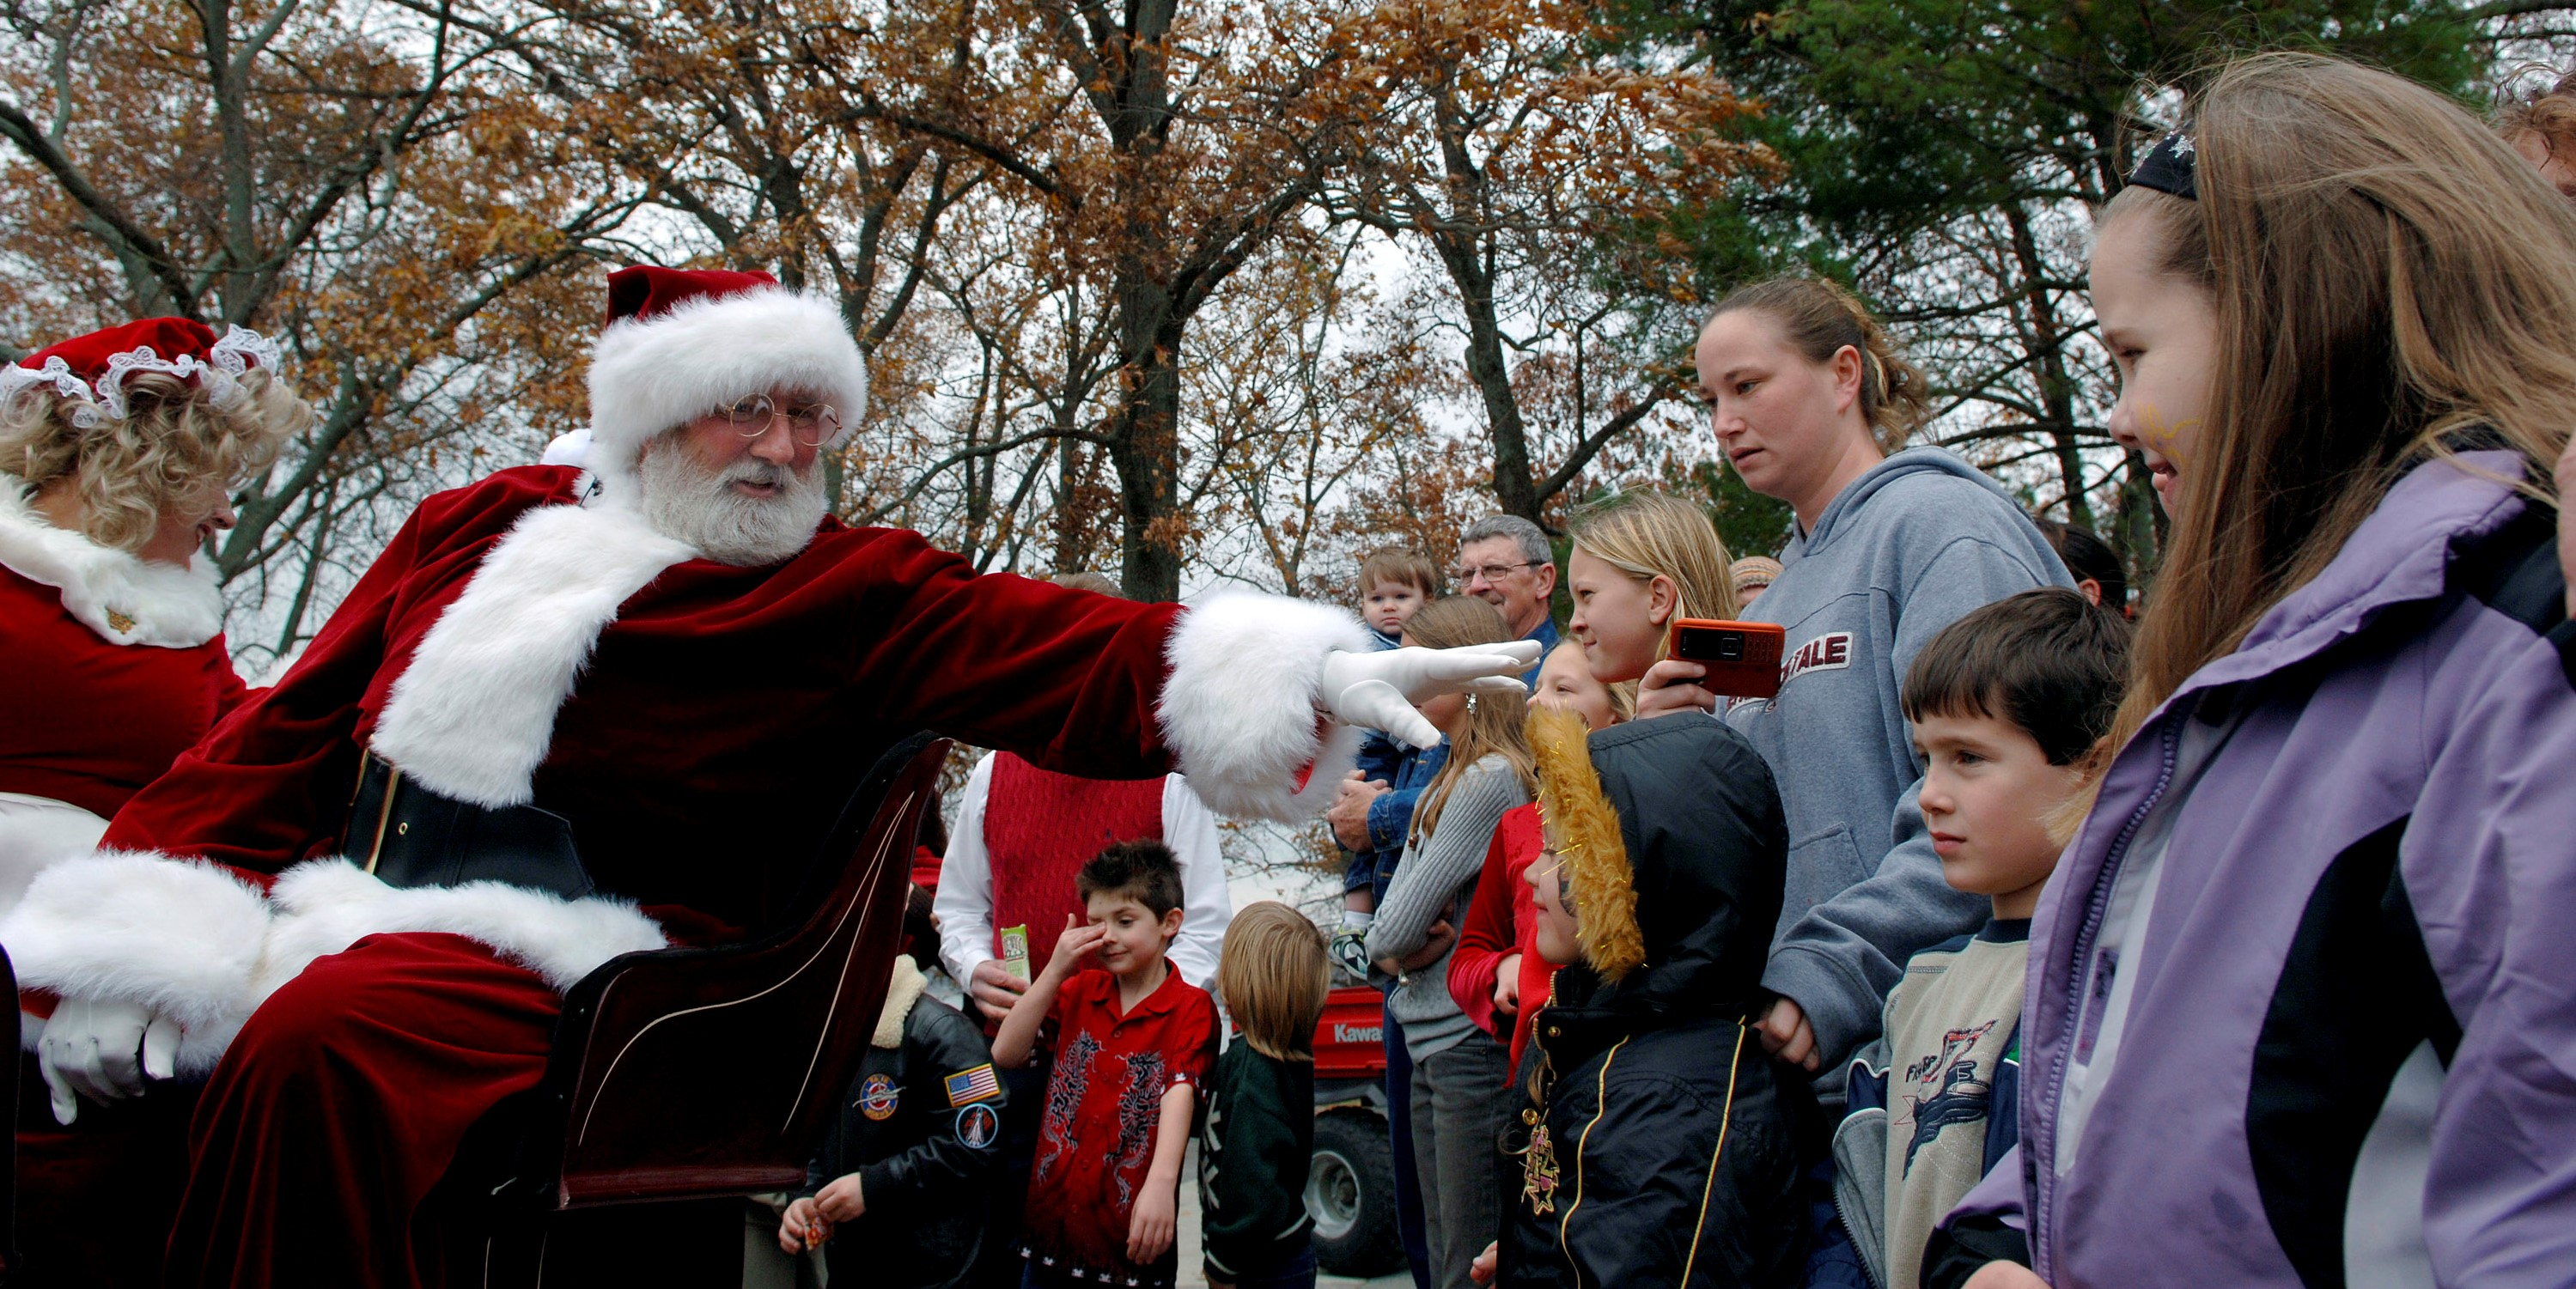 Santa reaches out and says hello to the kids of Arnold Air Force Base, Tenn., while making his way by sleigh to the Arnold Lakeside Club for a Christmas party, Dec. 2. (U.S. Air Force photo/Staff Sgt. Bennie J. Davis III)